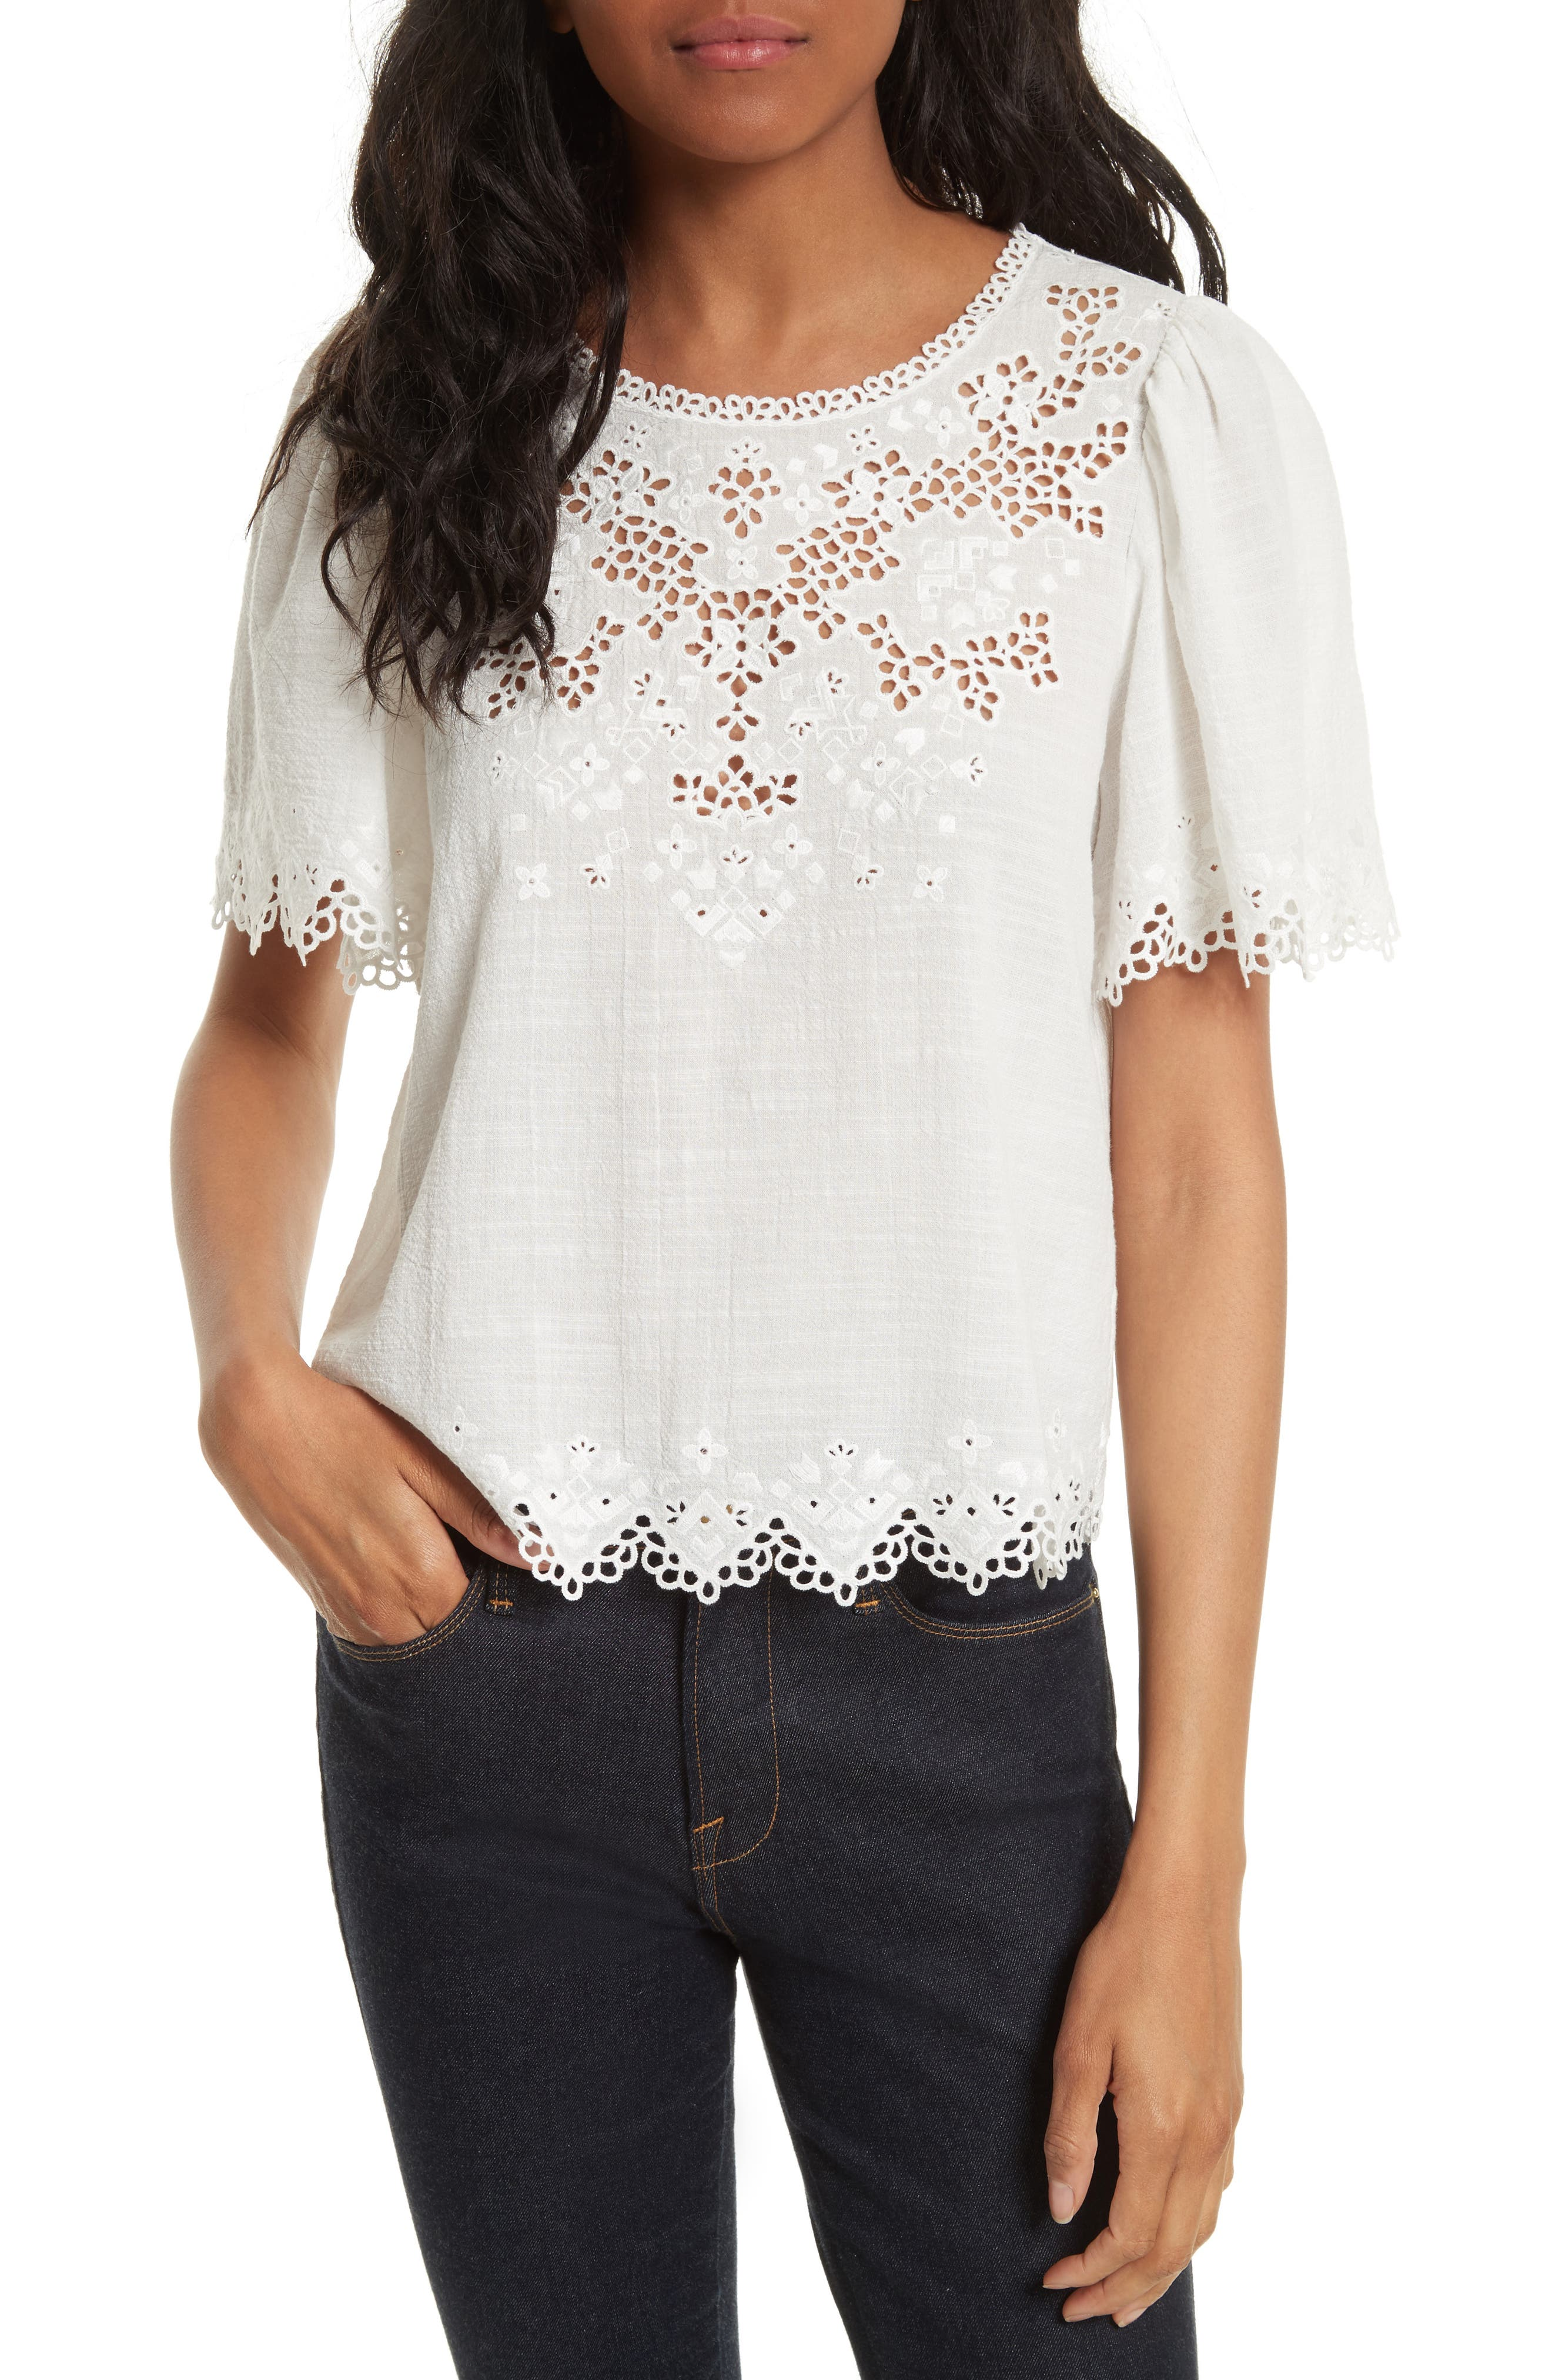 Main Image - Rebecca Taylor Amore Embroidered Top